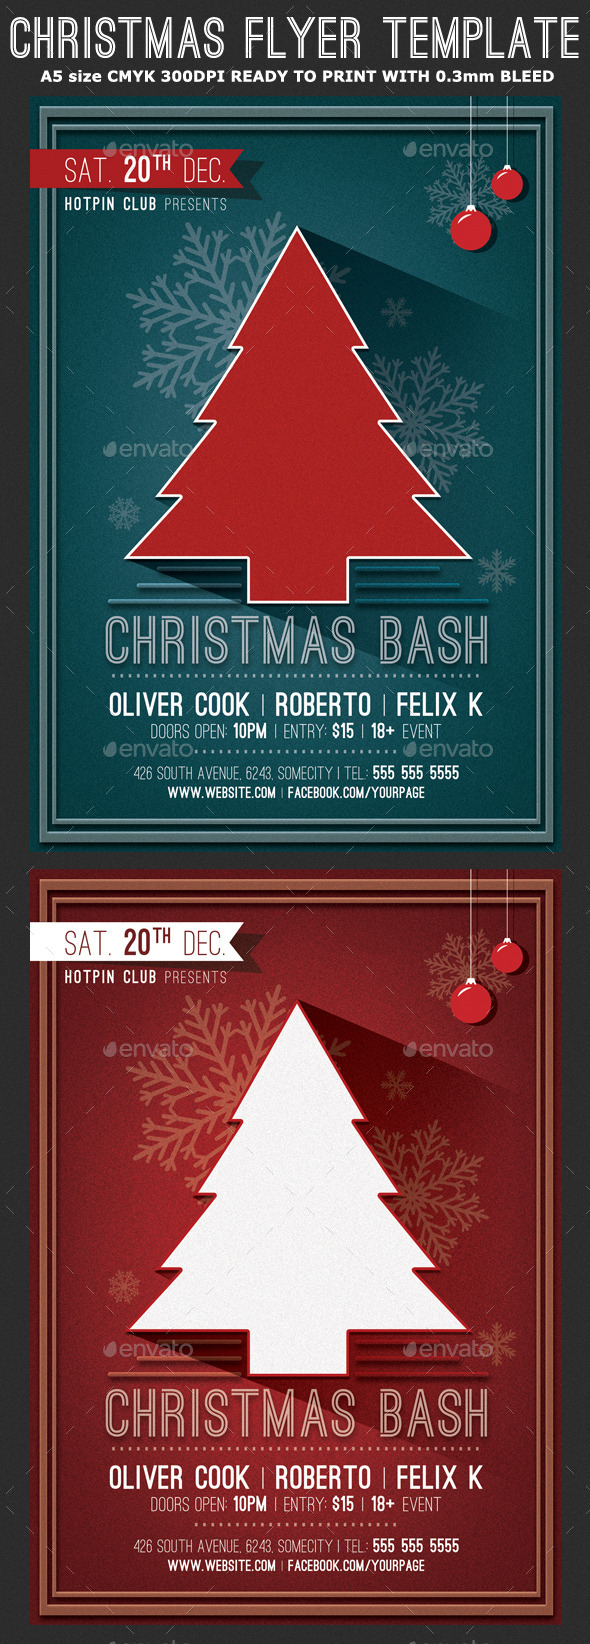 Minimal Christmas Party Flyer Template